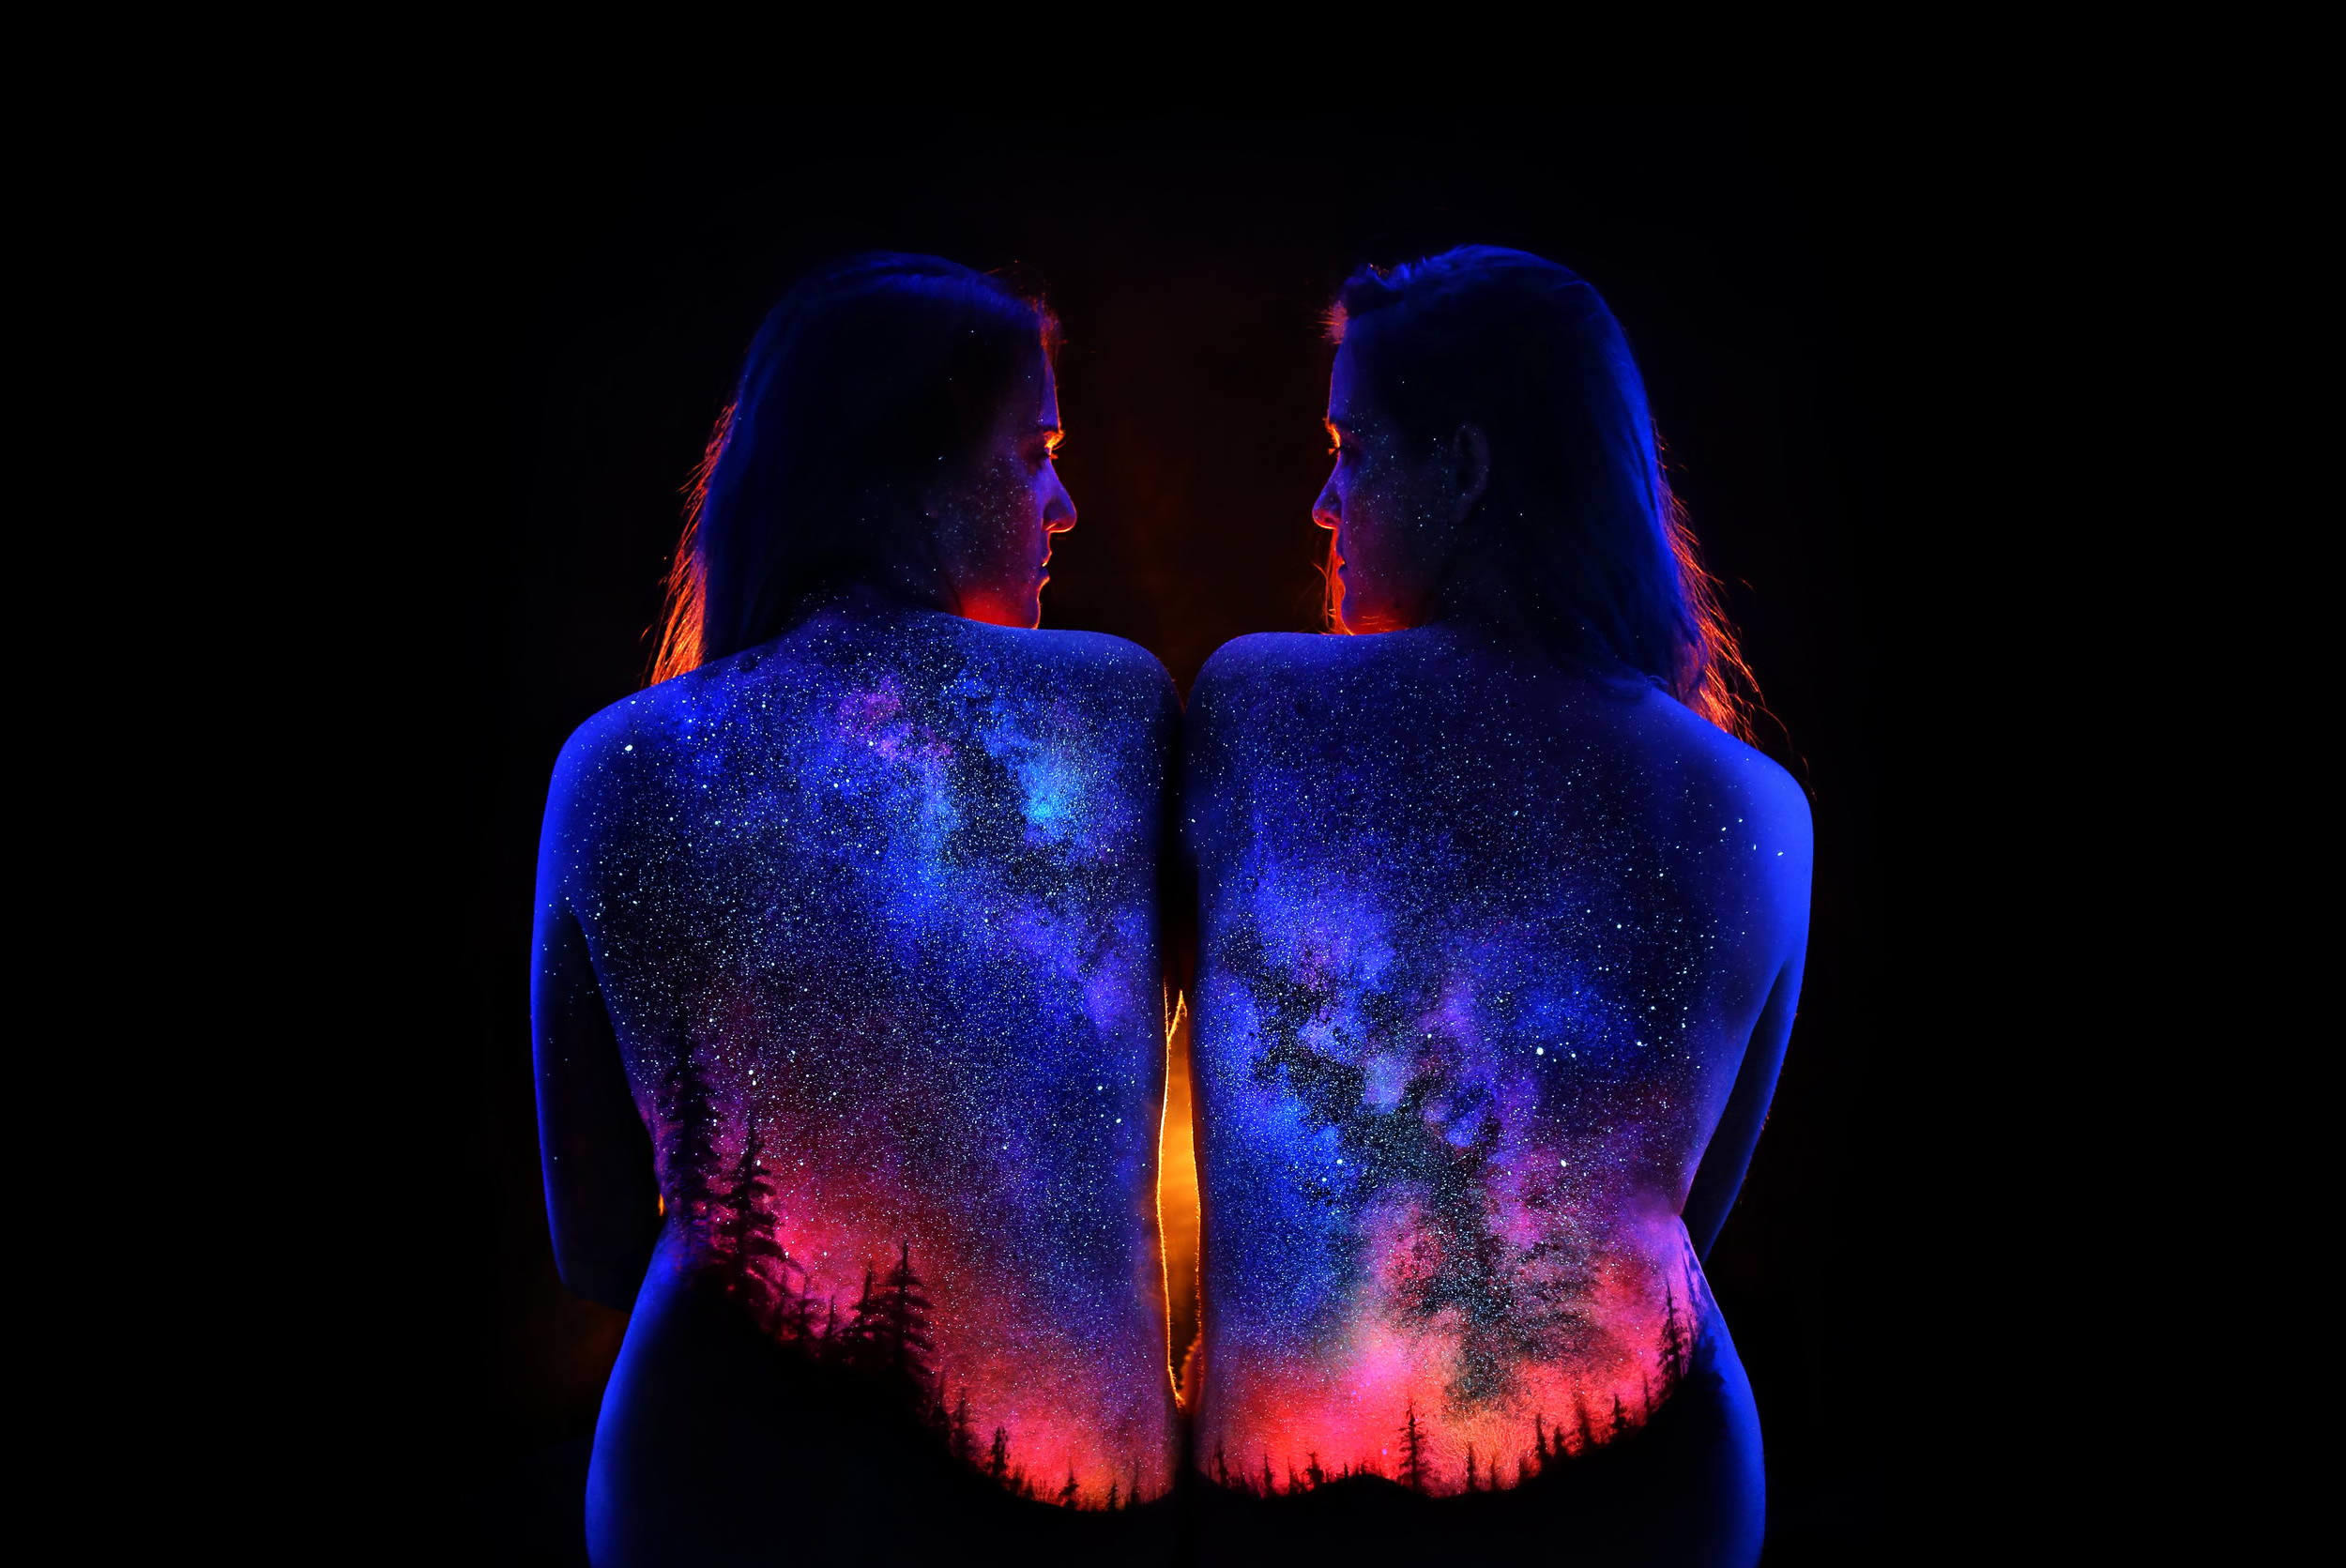 gallaxy, night and stars, body painting, uv light by john poppleton